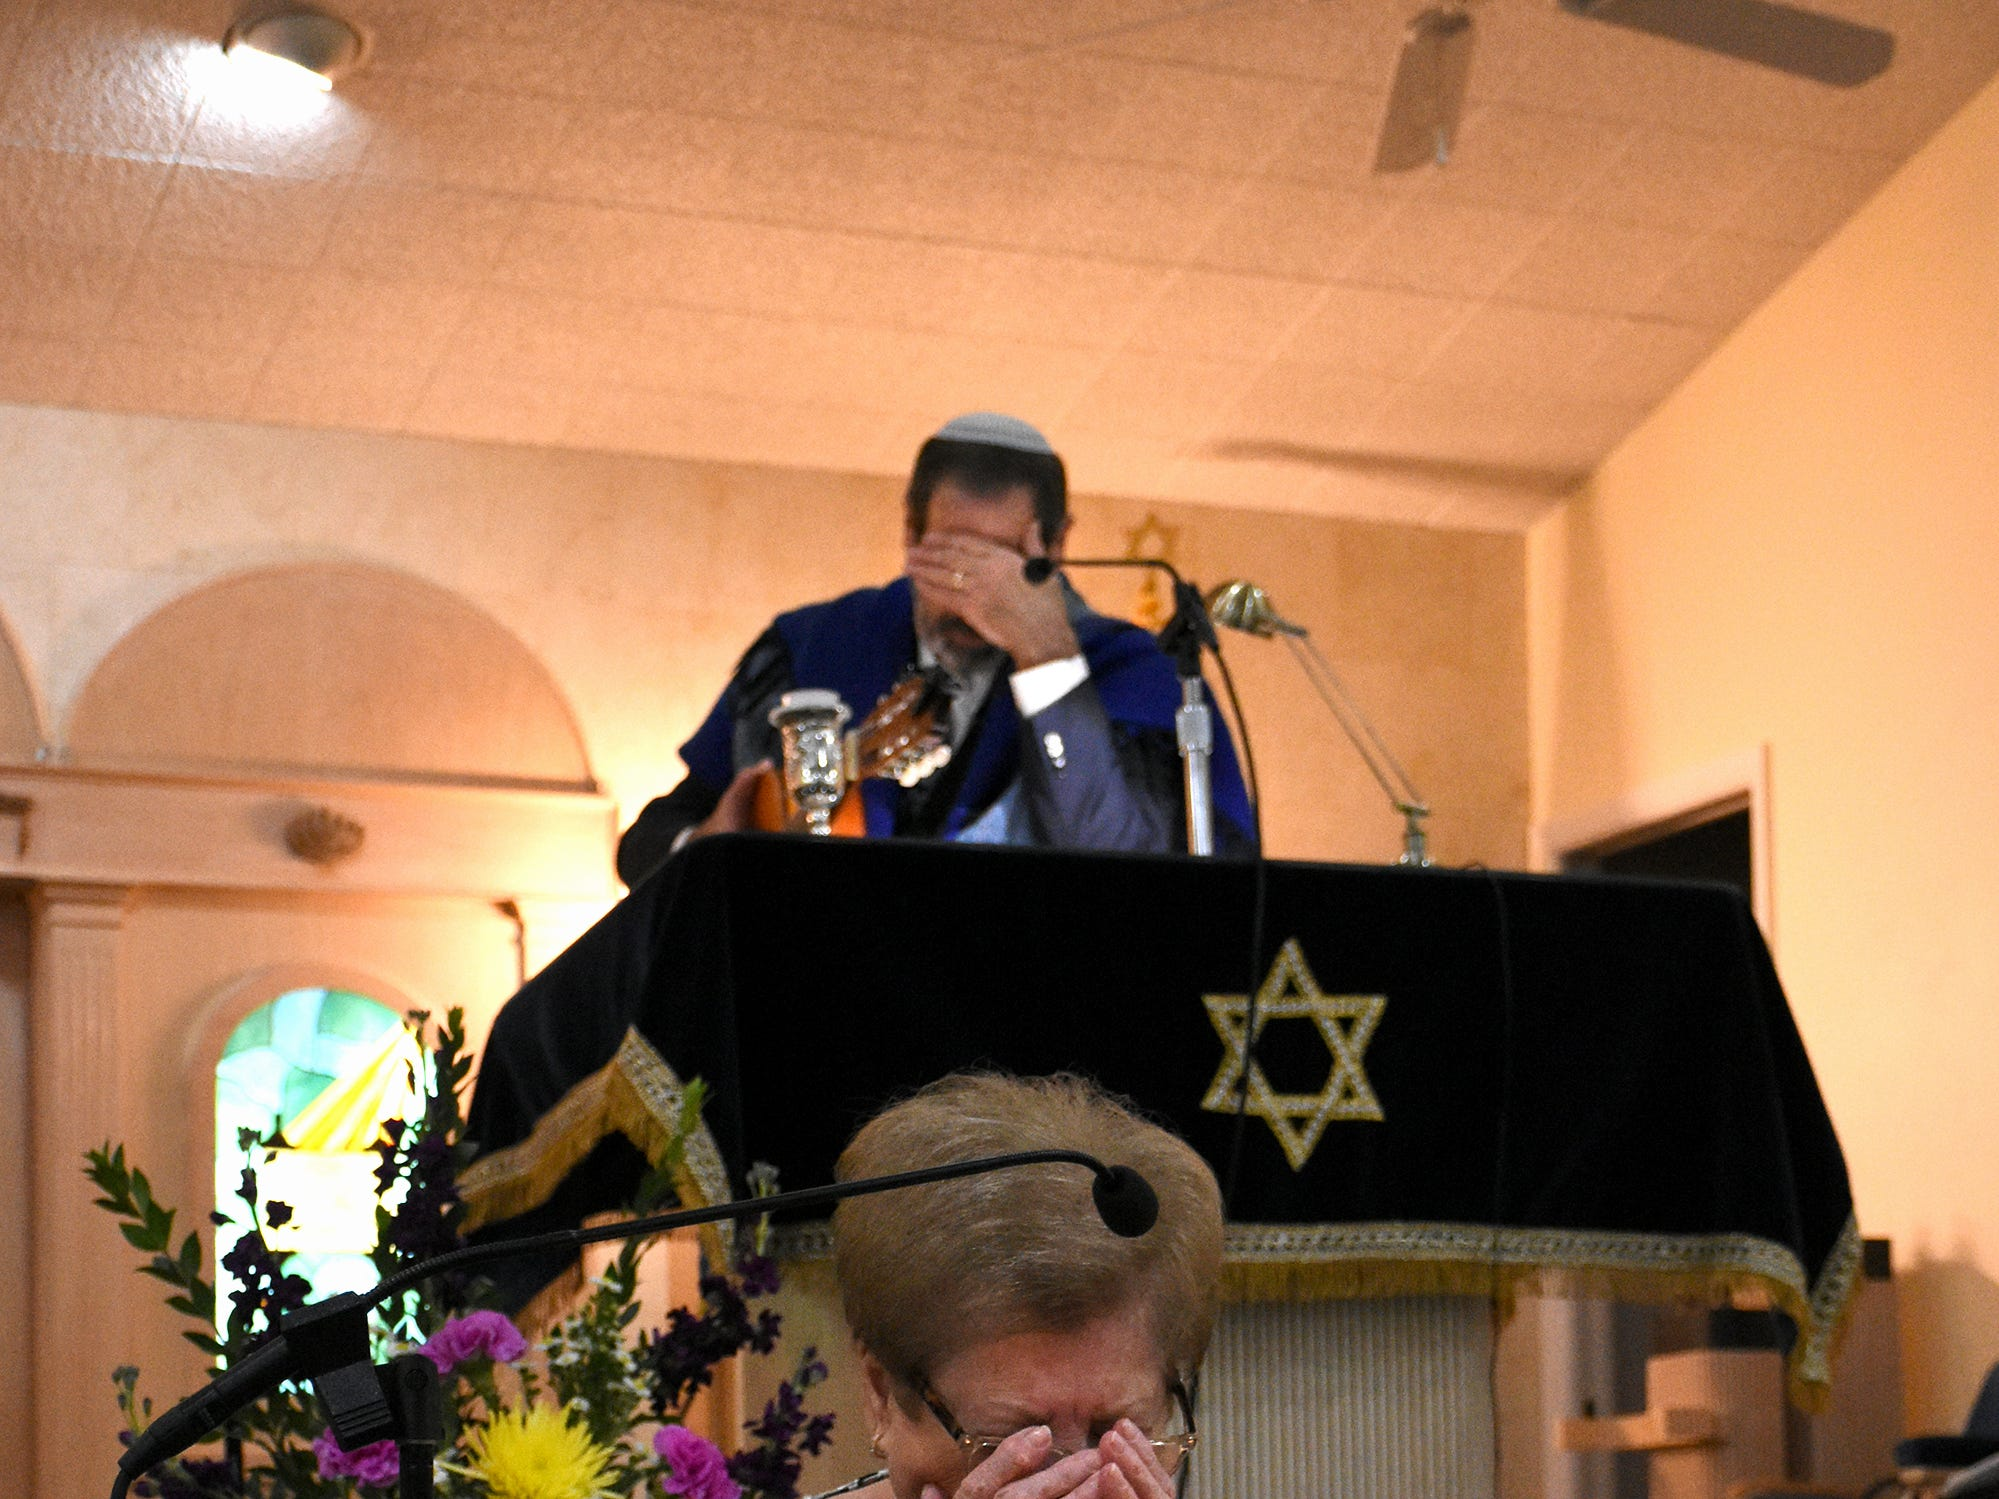 Eta Gluzband and Rabbi Mark Gross react with emotion. The Jewish Congregation of Marco Island held a Shabbat service Friday evening marking the 80th anniversary of Kristallnacht, when Nazi Germany brought perseution of Jews out into the open.